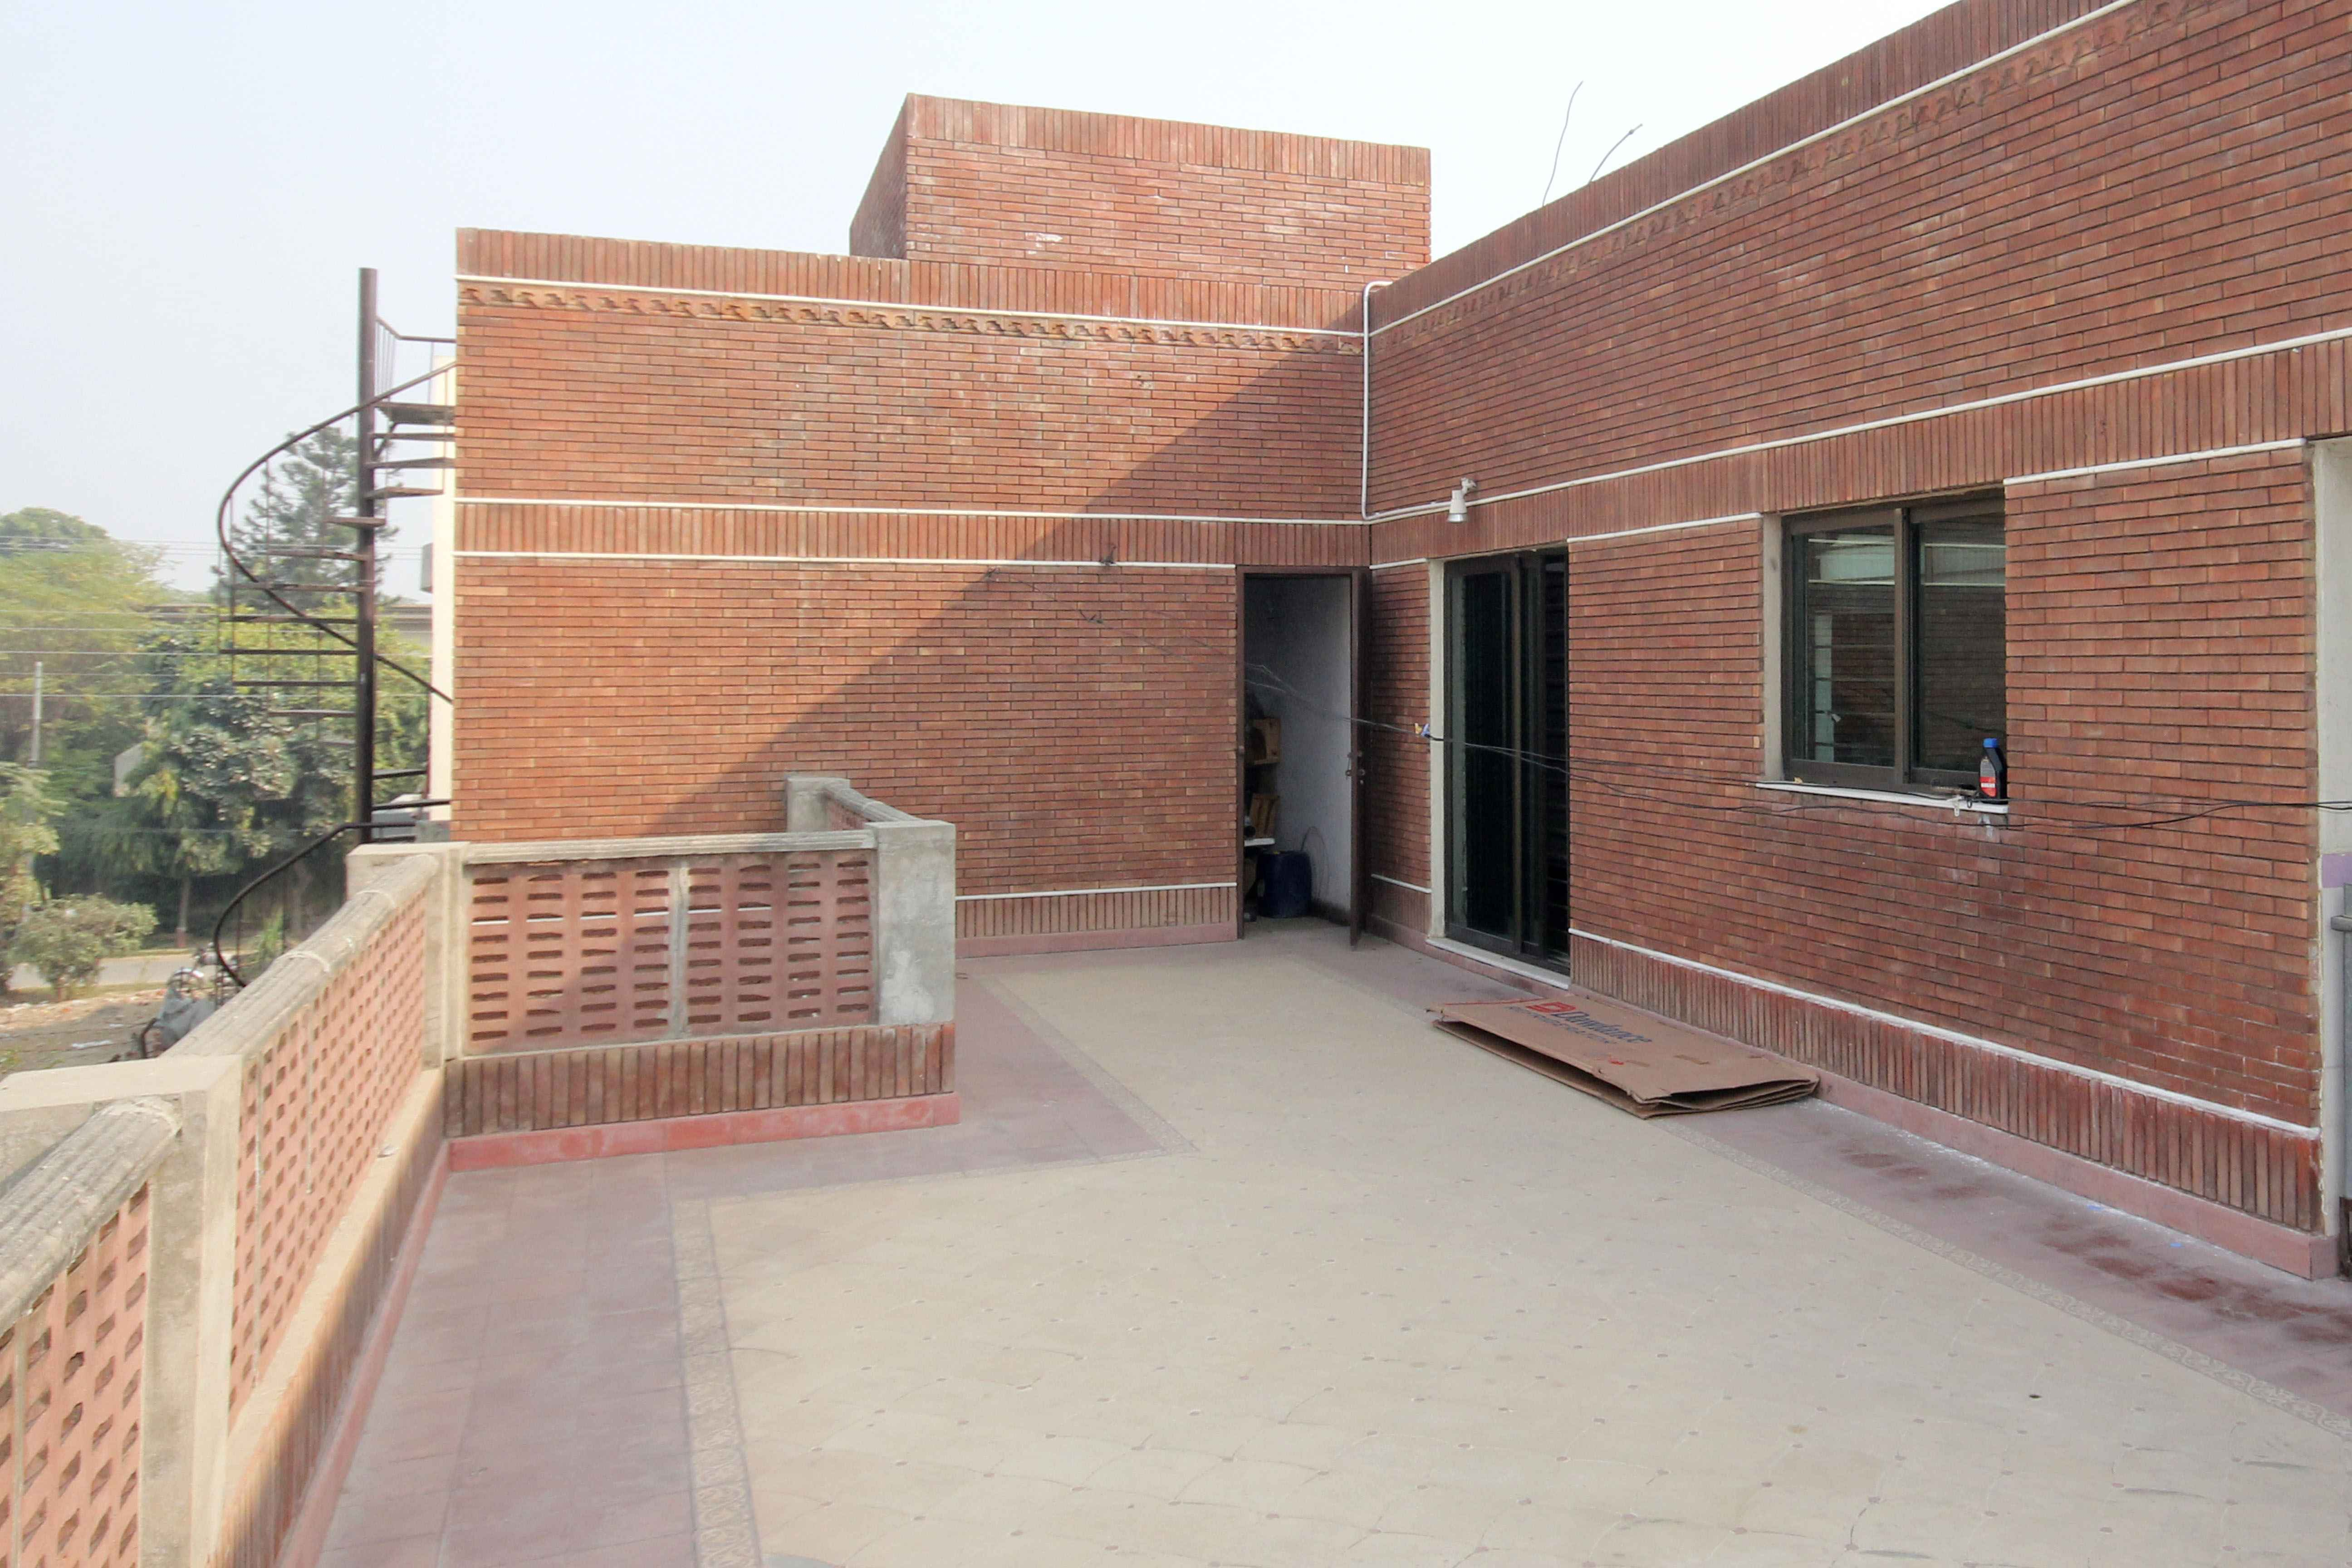 2 Kanal UPPER Portion for Rent in DHA Phase 1